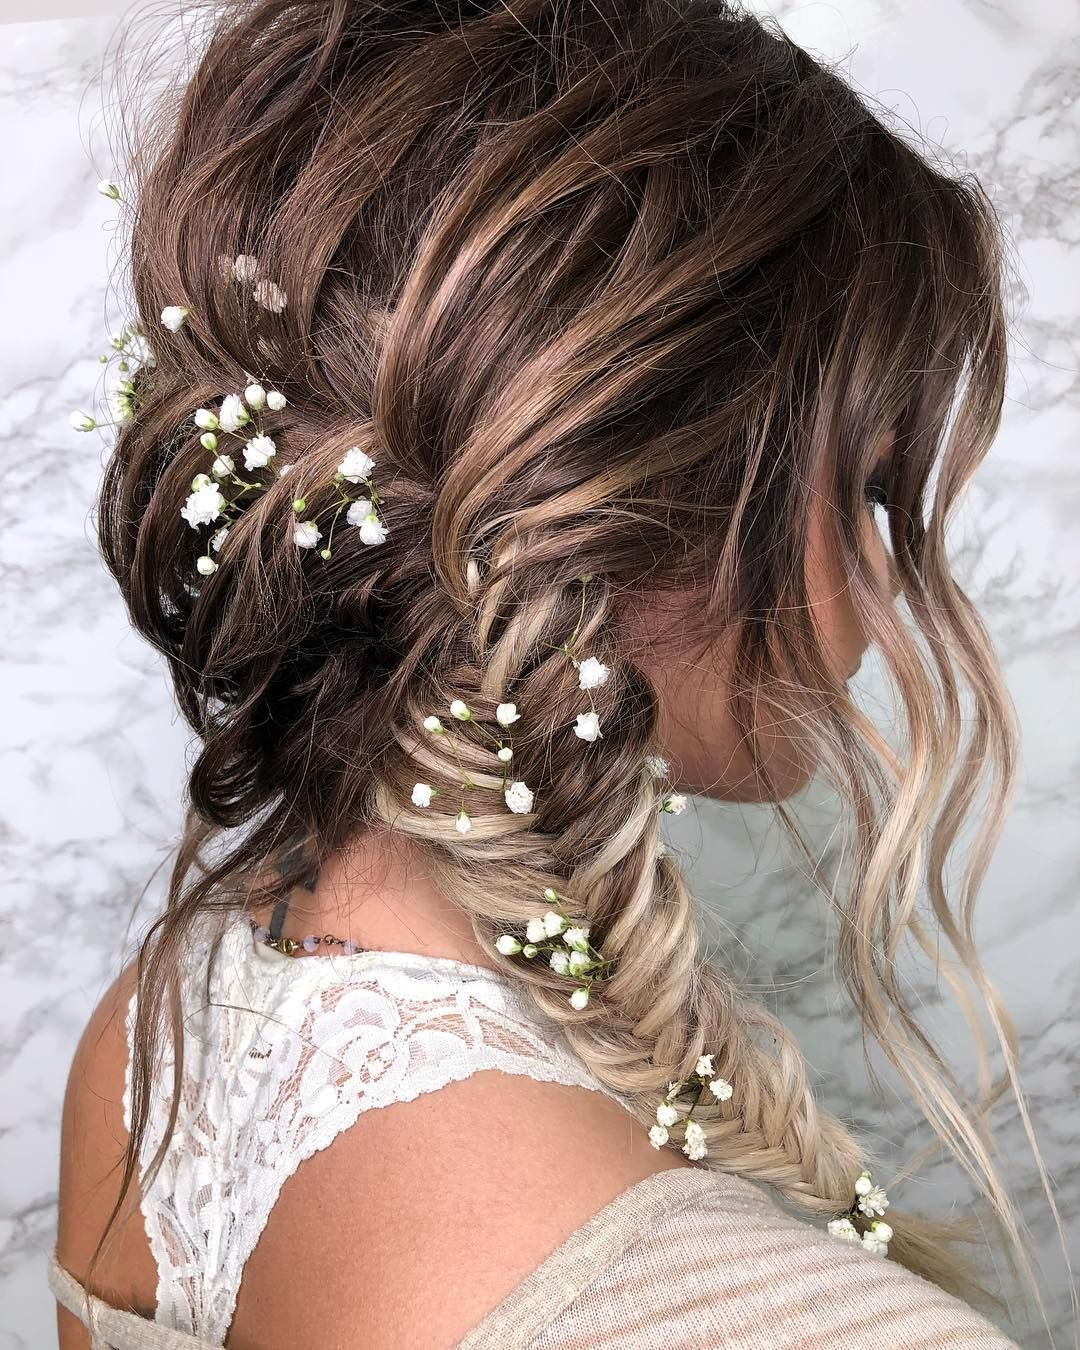 5 Hairbrushes Defying The Undone Hair Trend: Gorgeous Undone Fishtail Braid Wedding Day Hair Style By